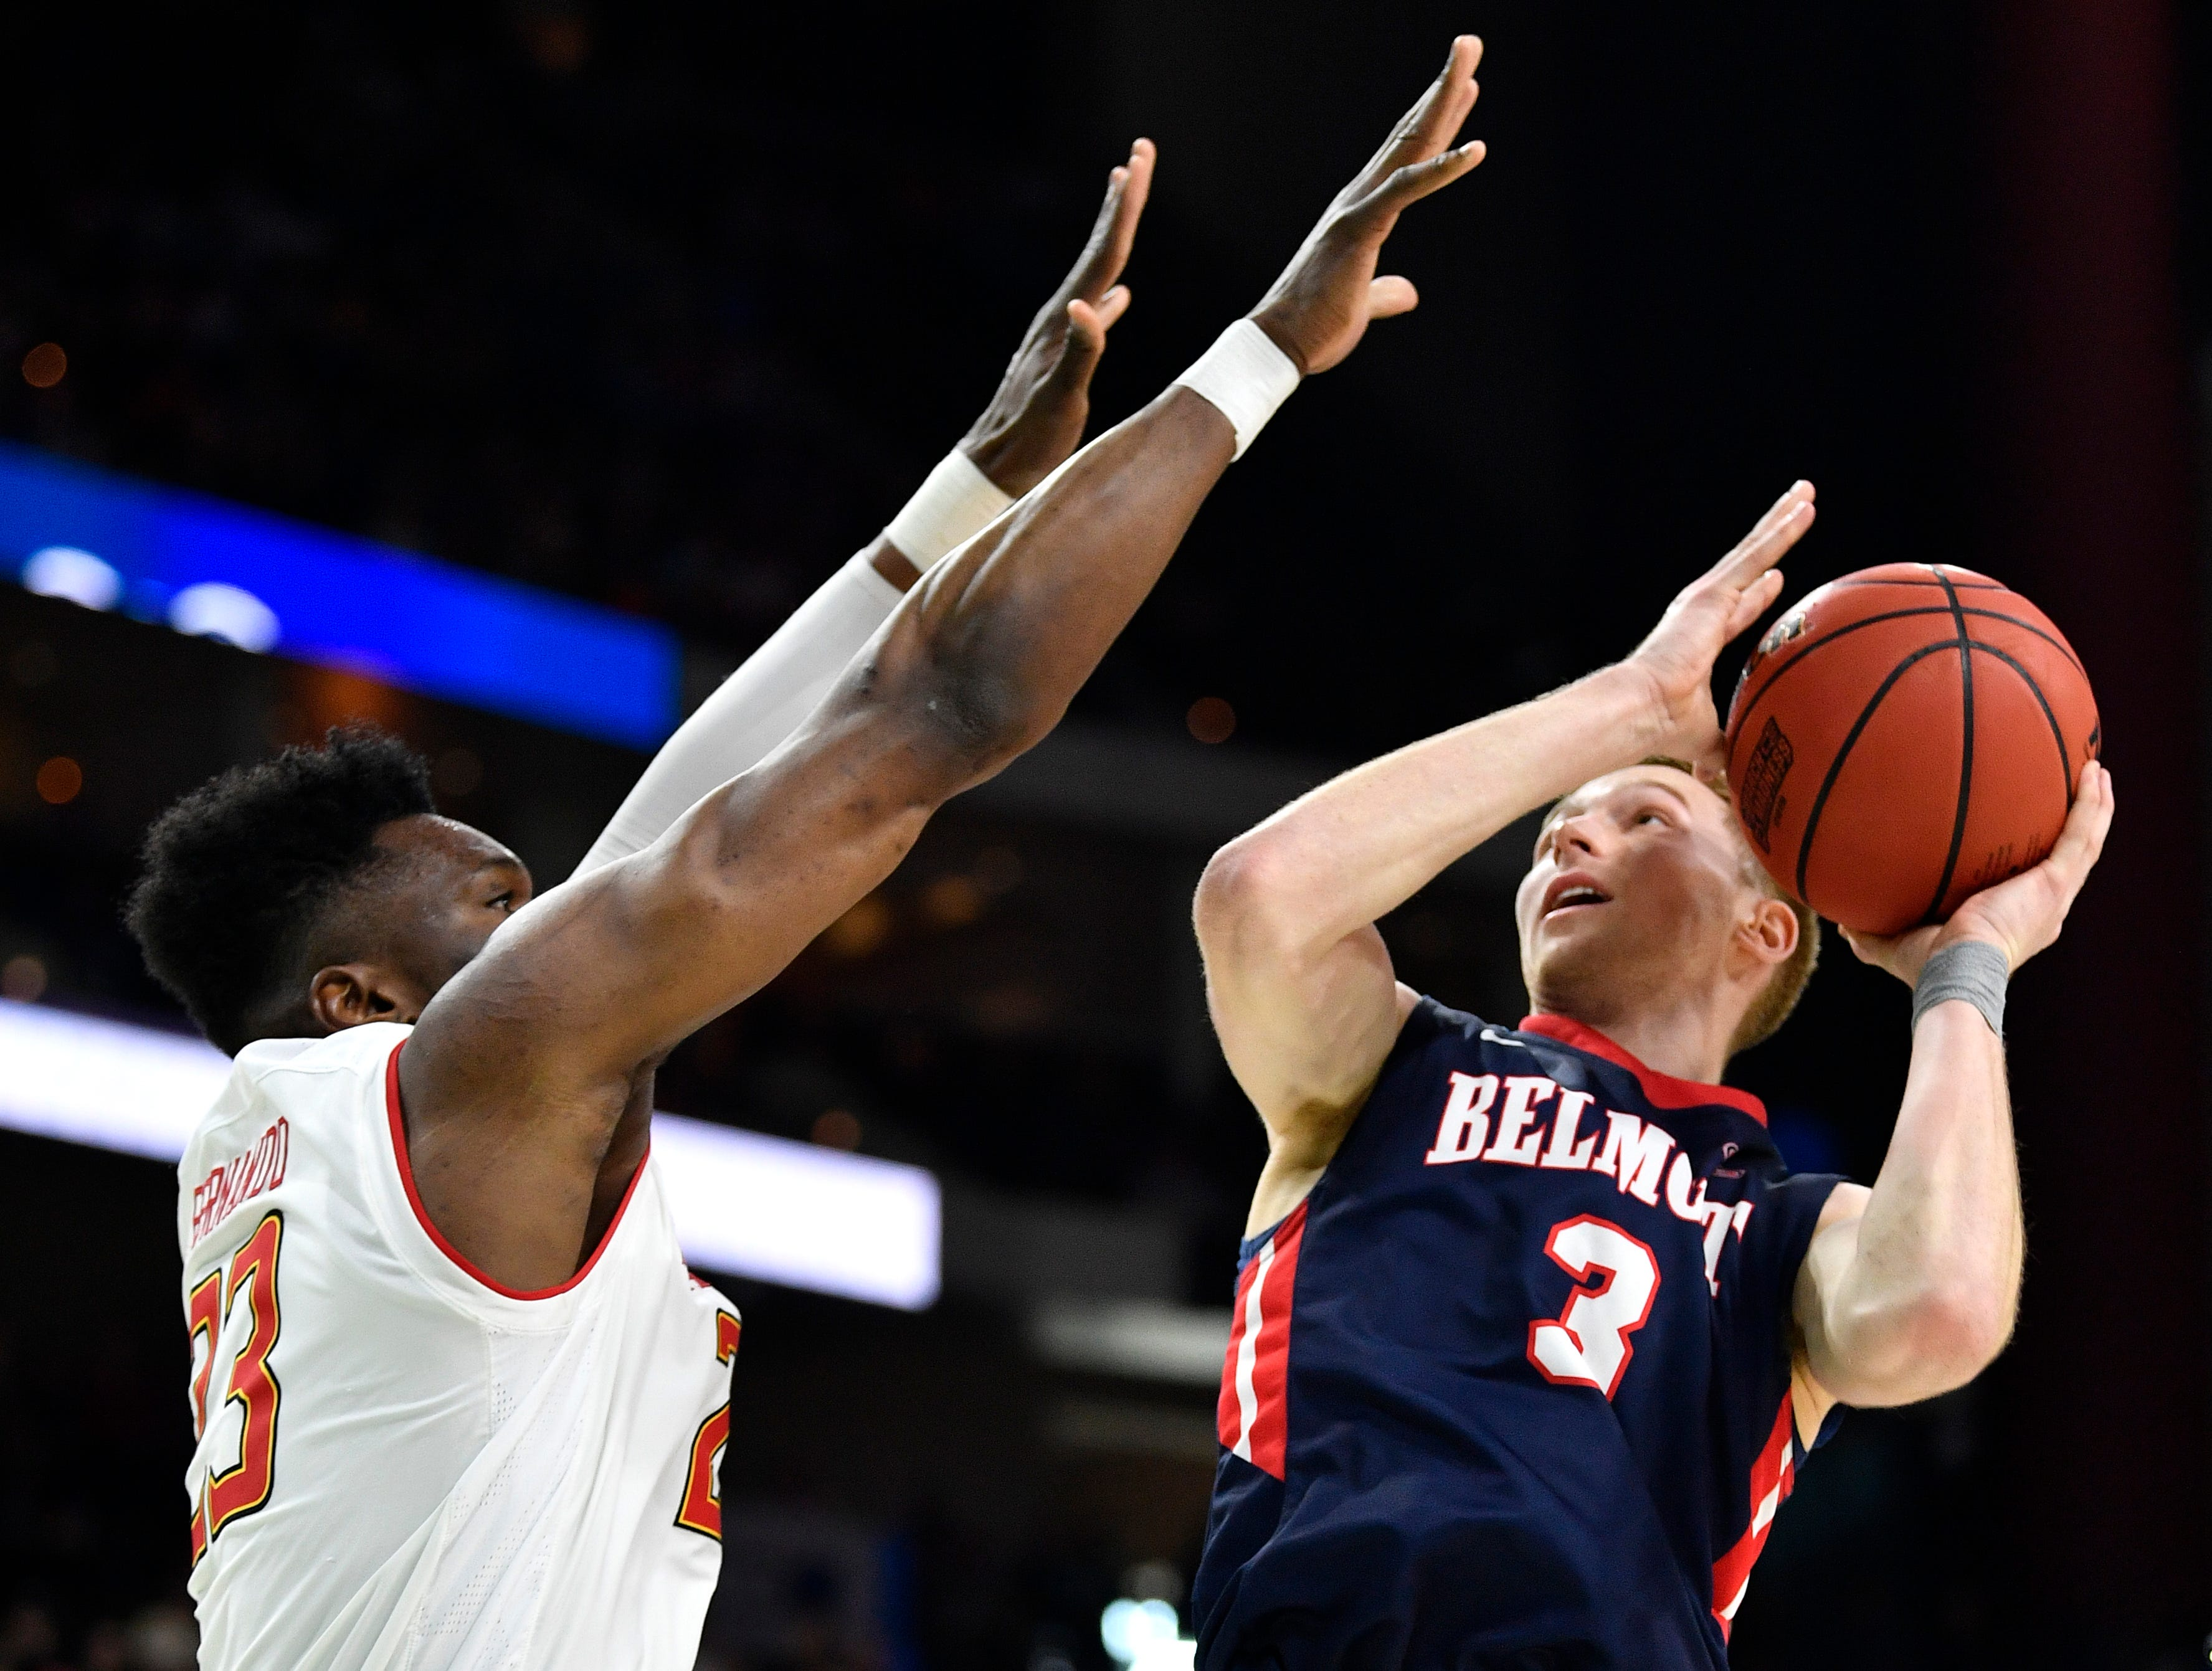 Belmont guard/forward Dylan Windler (3) shoots against Maryland forward Bruno Fernando (23) during the second half of the first-round NCAA college basketball tournament game at VyStar Veterans Memorial Arena in Jacksonville, Fla., Thursday, March 21, 2019.